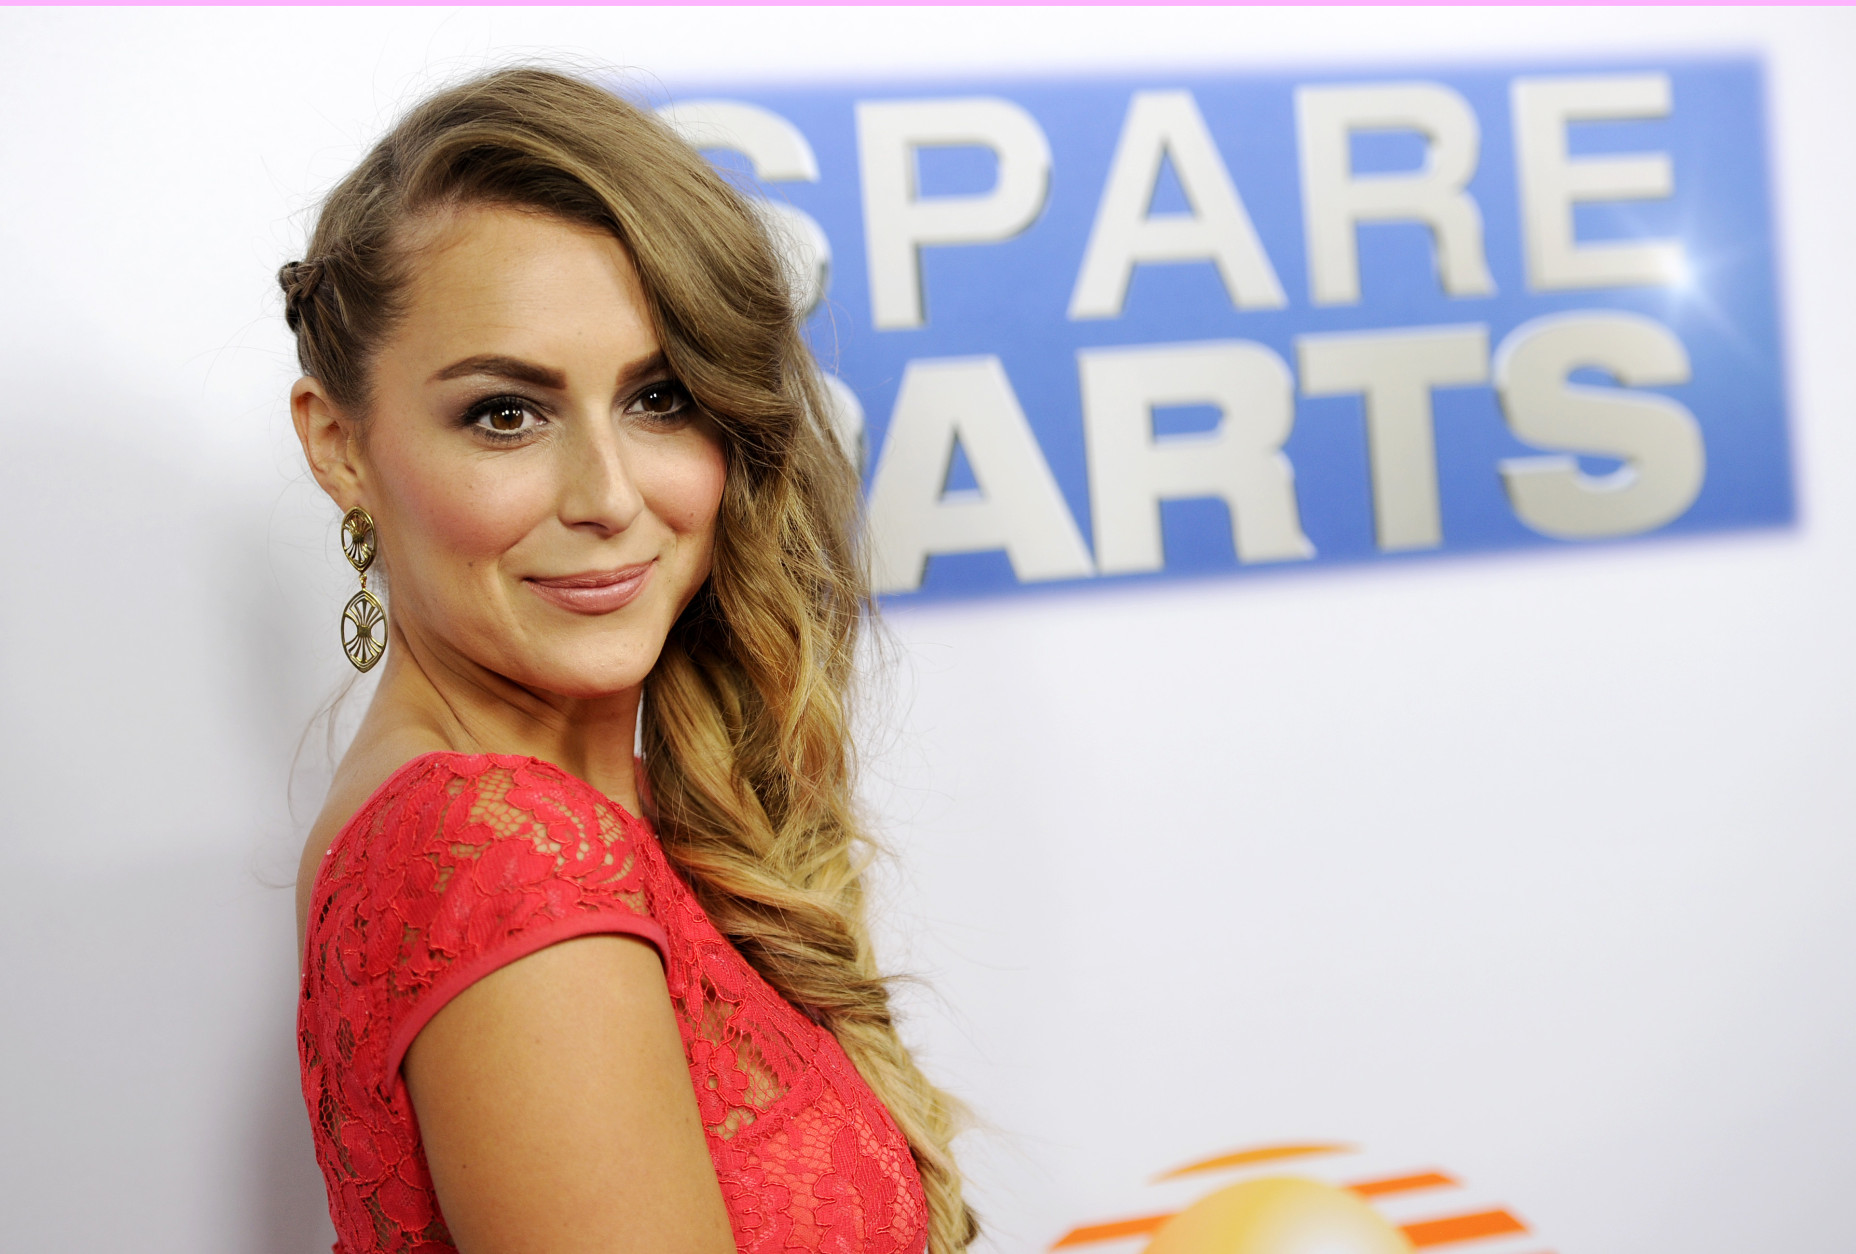 """Alexa Penavega, a cast member in """"Spare Parts,"""" poses at the premiere of the film at Arclight Cinemas on Thursday, Jan. 8, 2015, in Los Angeles. (Photo by Chris Pizzello/Invision/AP)"""